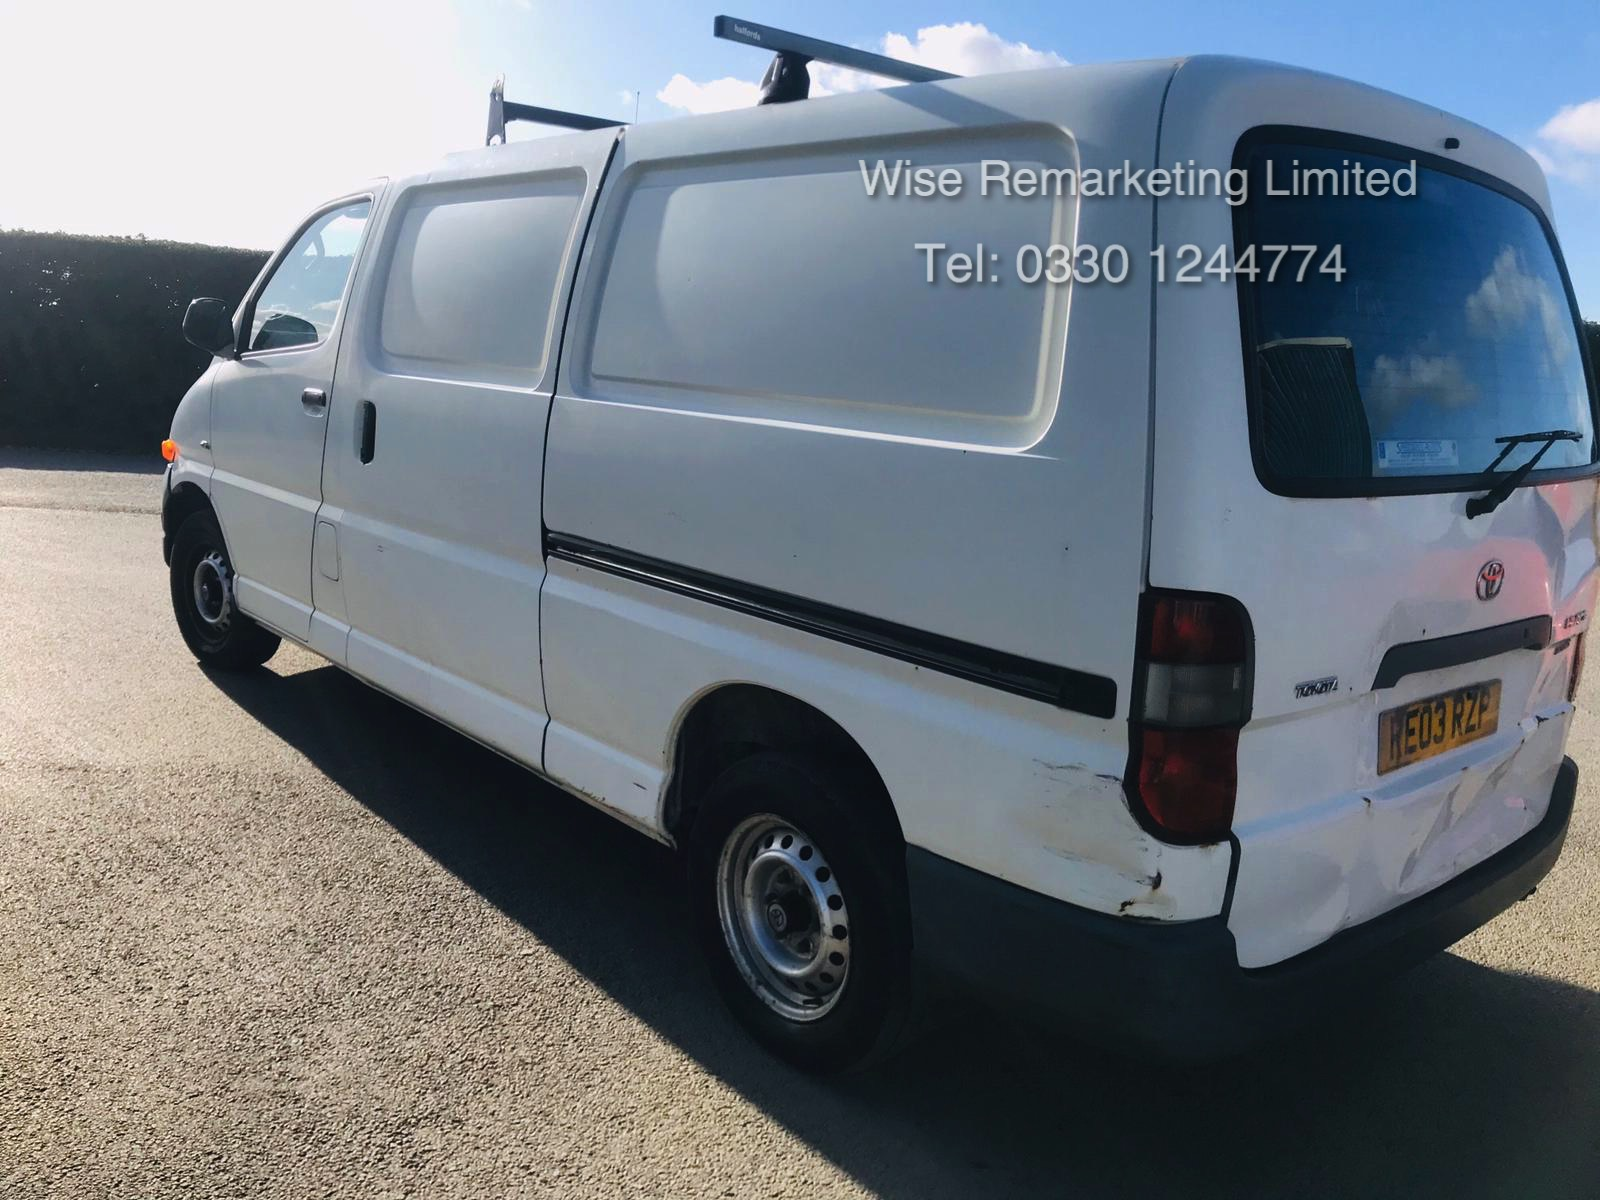 Toyota Hiace 300 GS 2.5 D4D - 2003 03 Reg - 1 Keeper From New - 3 Seater - Roof Rack - Image 3 of 15